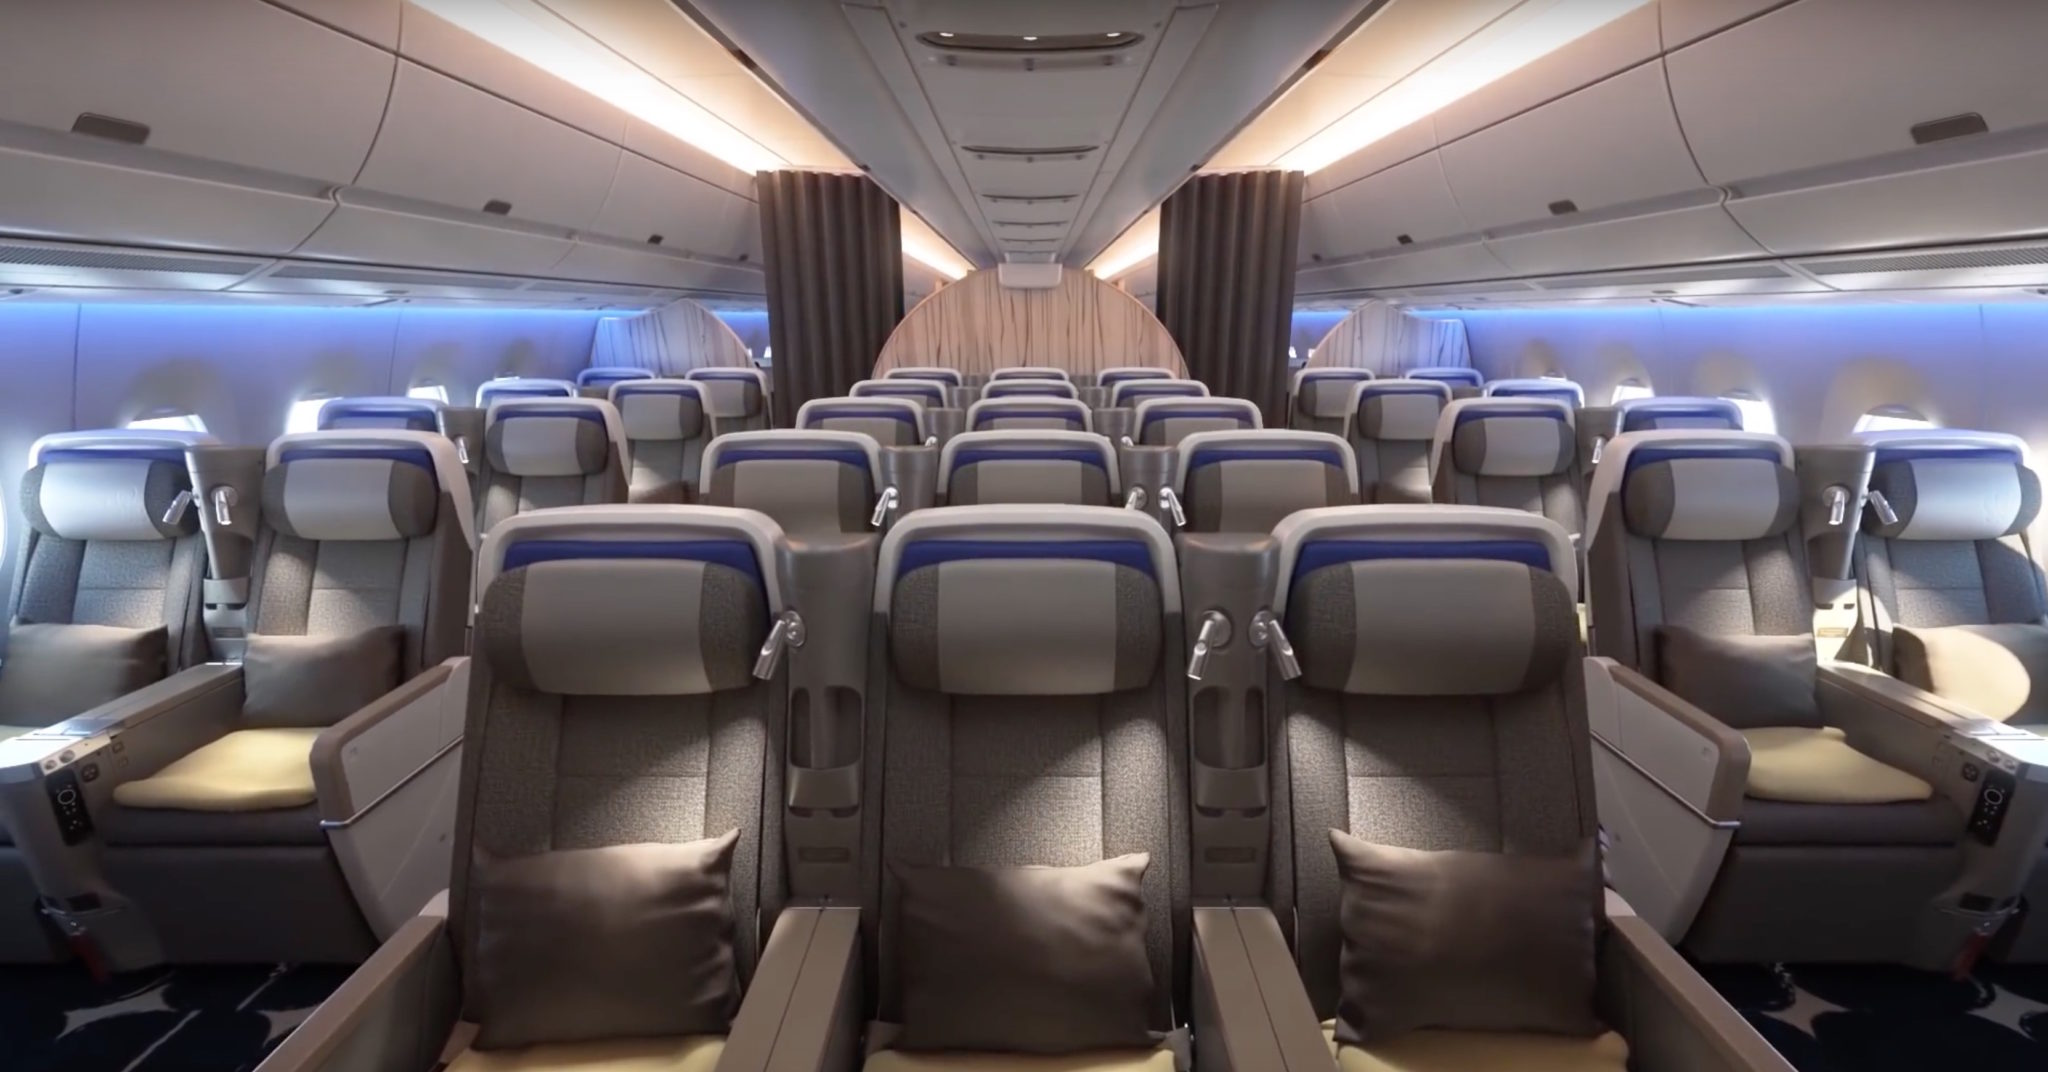 2-3-2 in premium economy on the A350 is a real #PaxEx bonus. Image: China Airlines